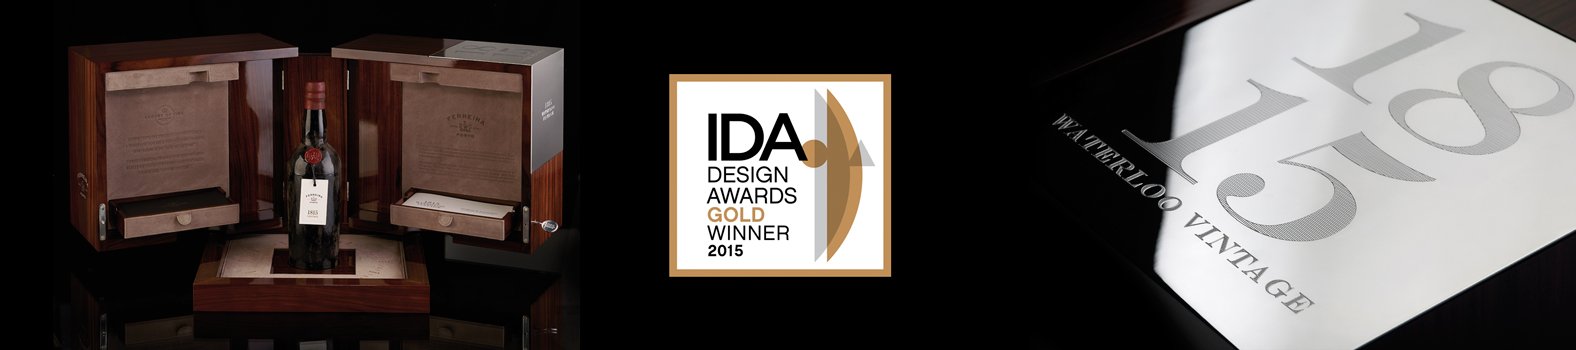 Omdesign receives 8 awards in USA